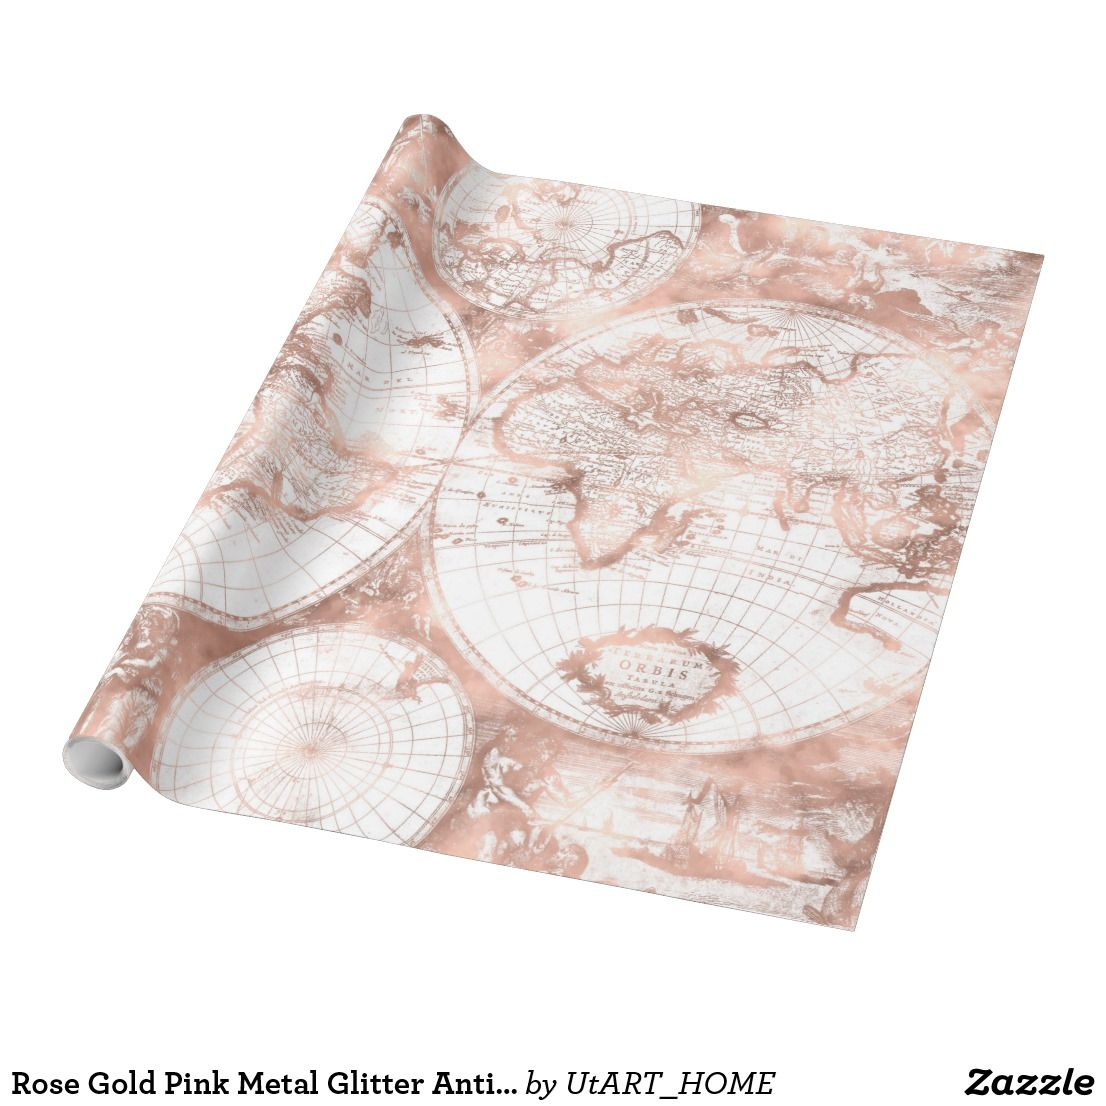 Rose gold pink metal glitter antique world map wrapping paper rose gold pink metal glitter antique world map wrapping paper this trendy retro shimmering world map showes an historic print of the world globe with usa gumiabroncs Choice Image